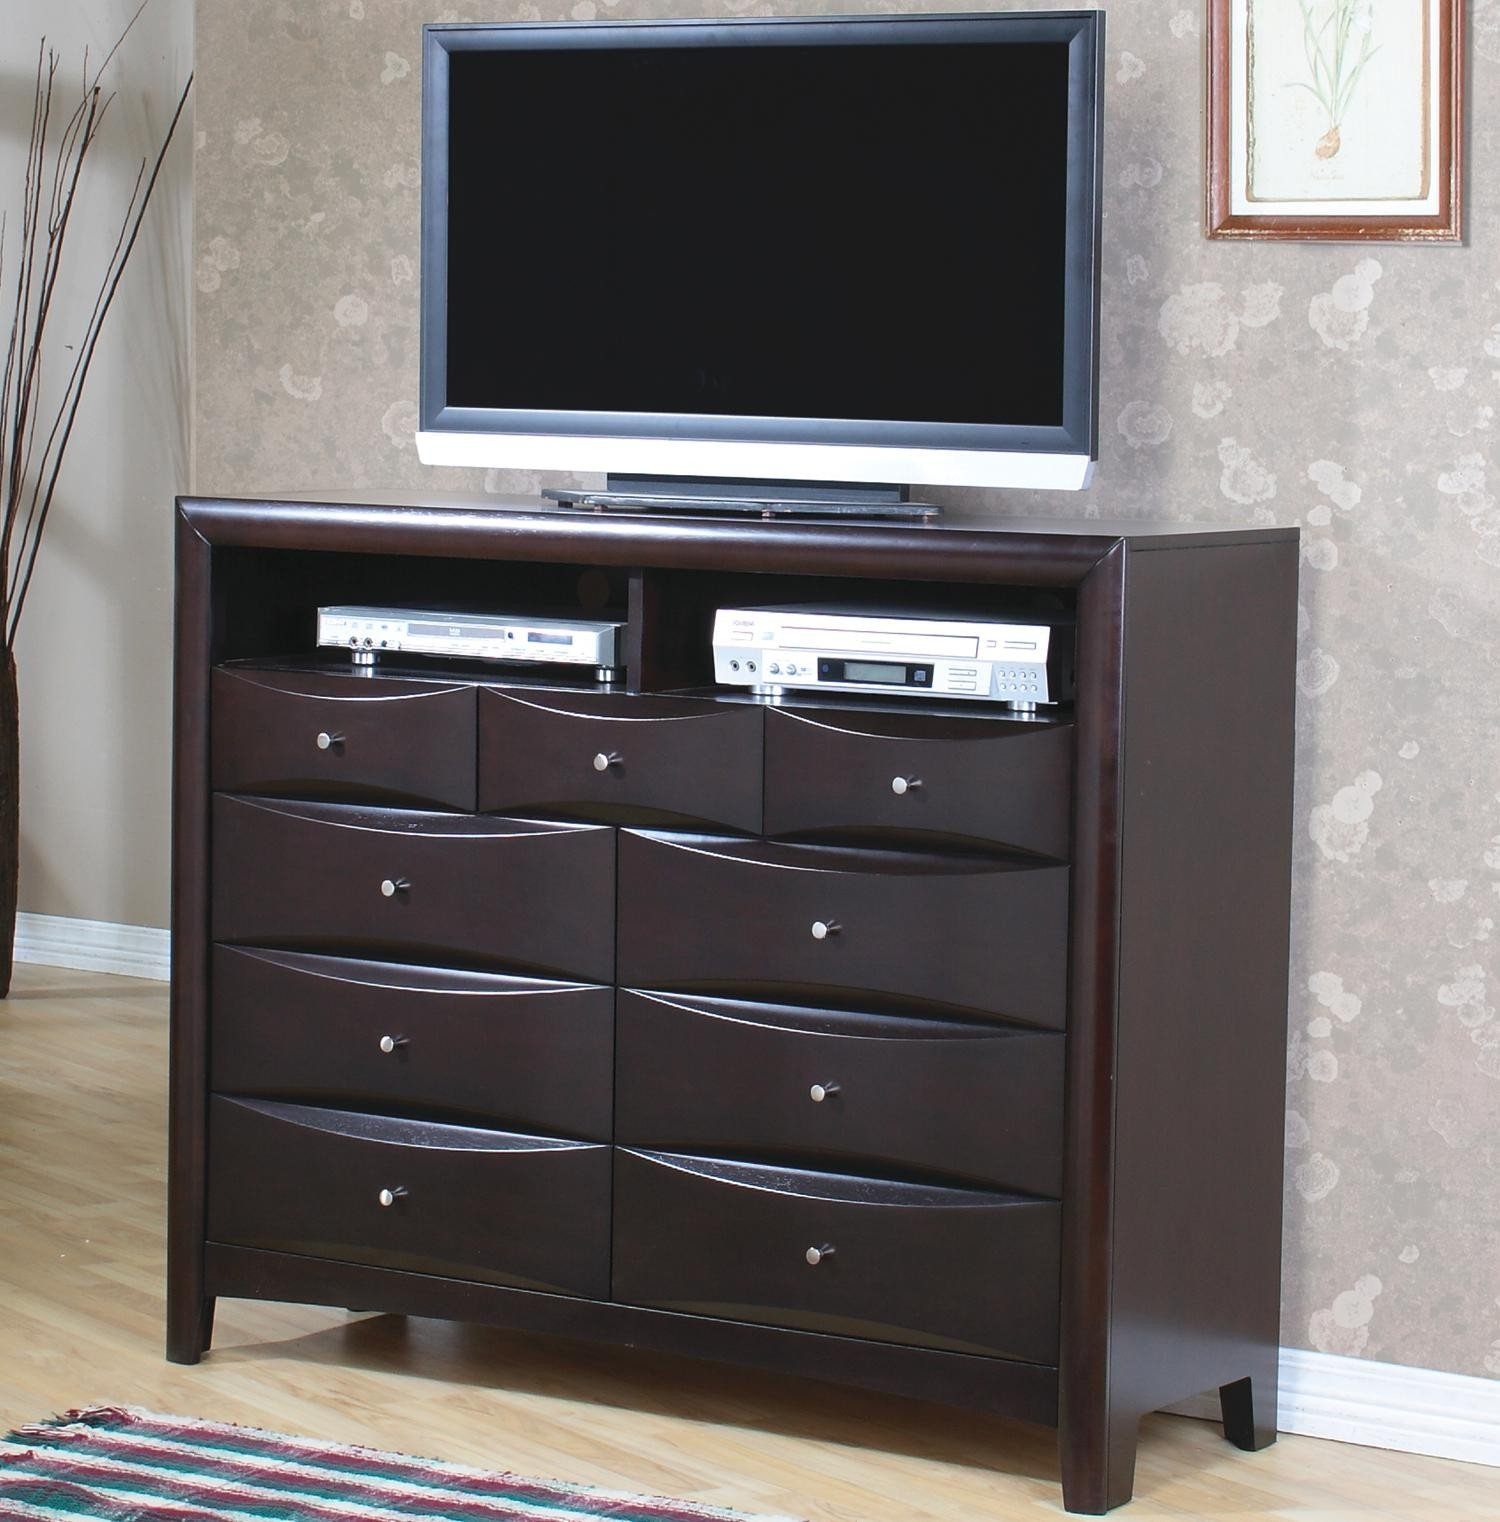 bedroom tv stand dresser bedroom tv stand dresser home furniture design 14443